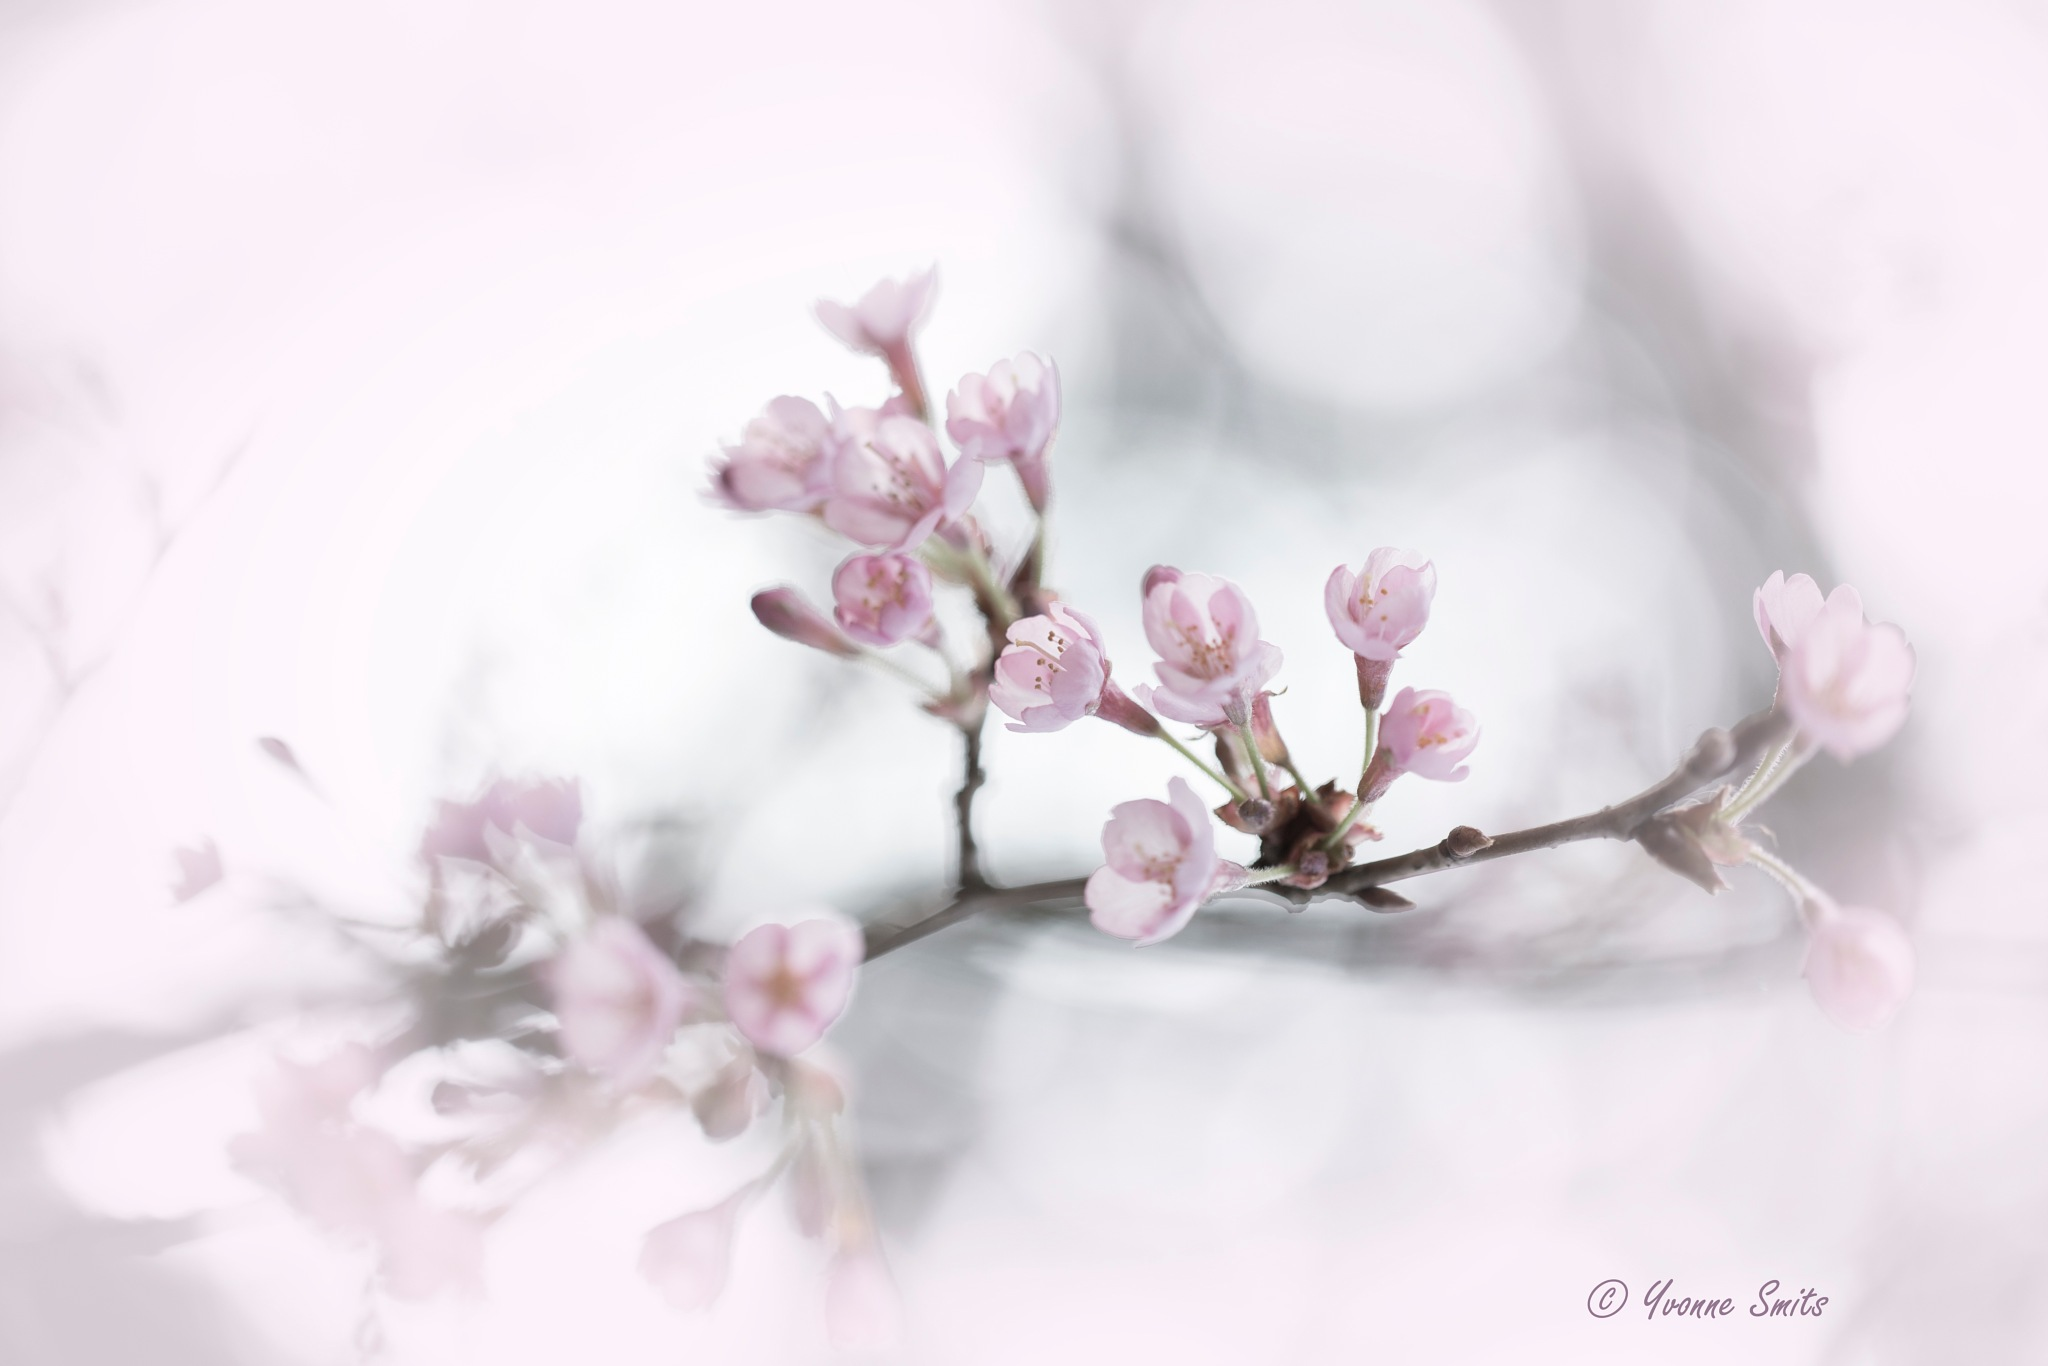 Spring is in the air  by Yvonne Smits